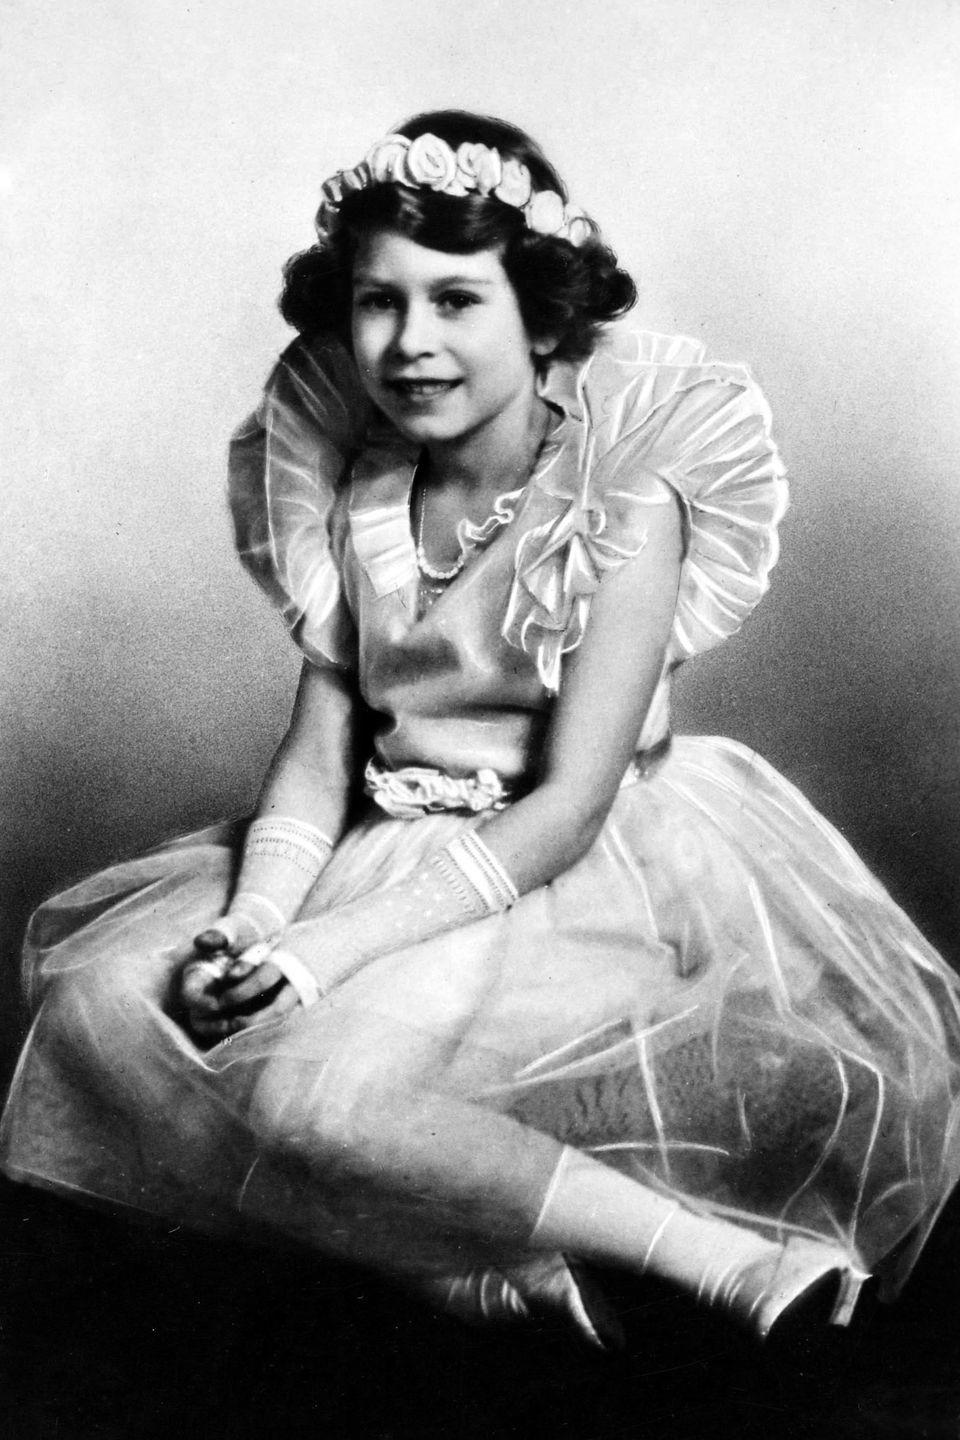 <p>In an adorable ballerina outfit with a floral crown and fingerless gloves. At the time of this photograph, she was Princess Elizabeth, daughter of The Duke and Duchess of York.</p>